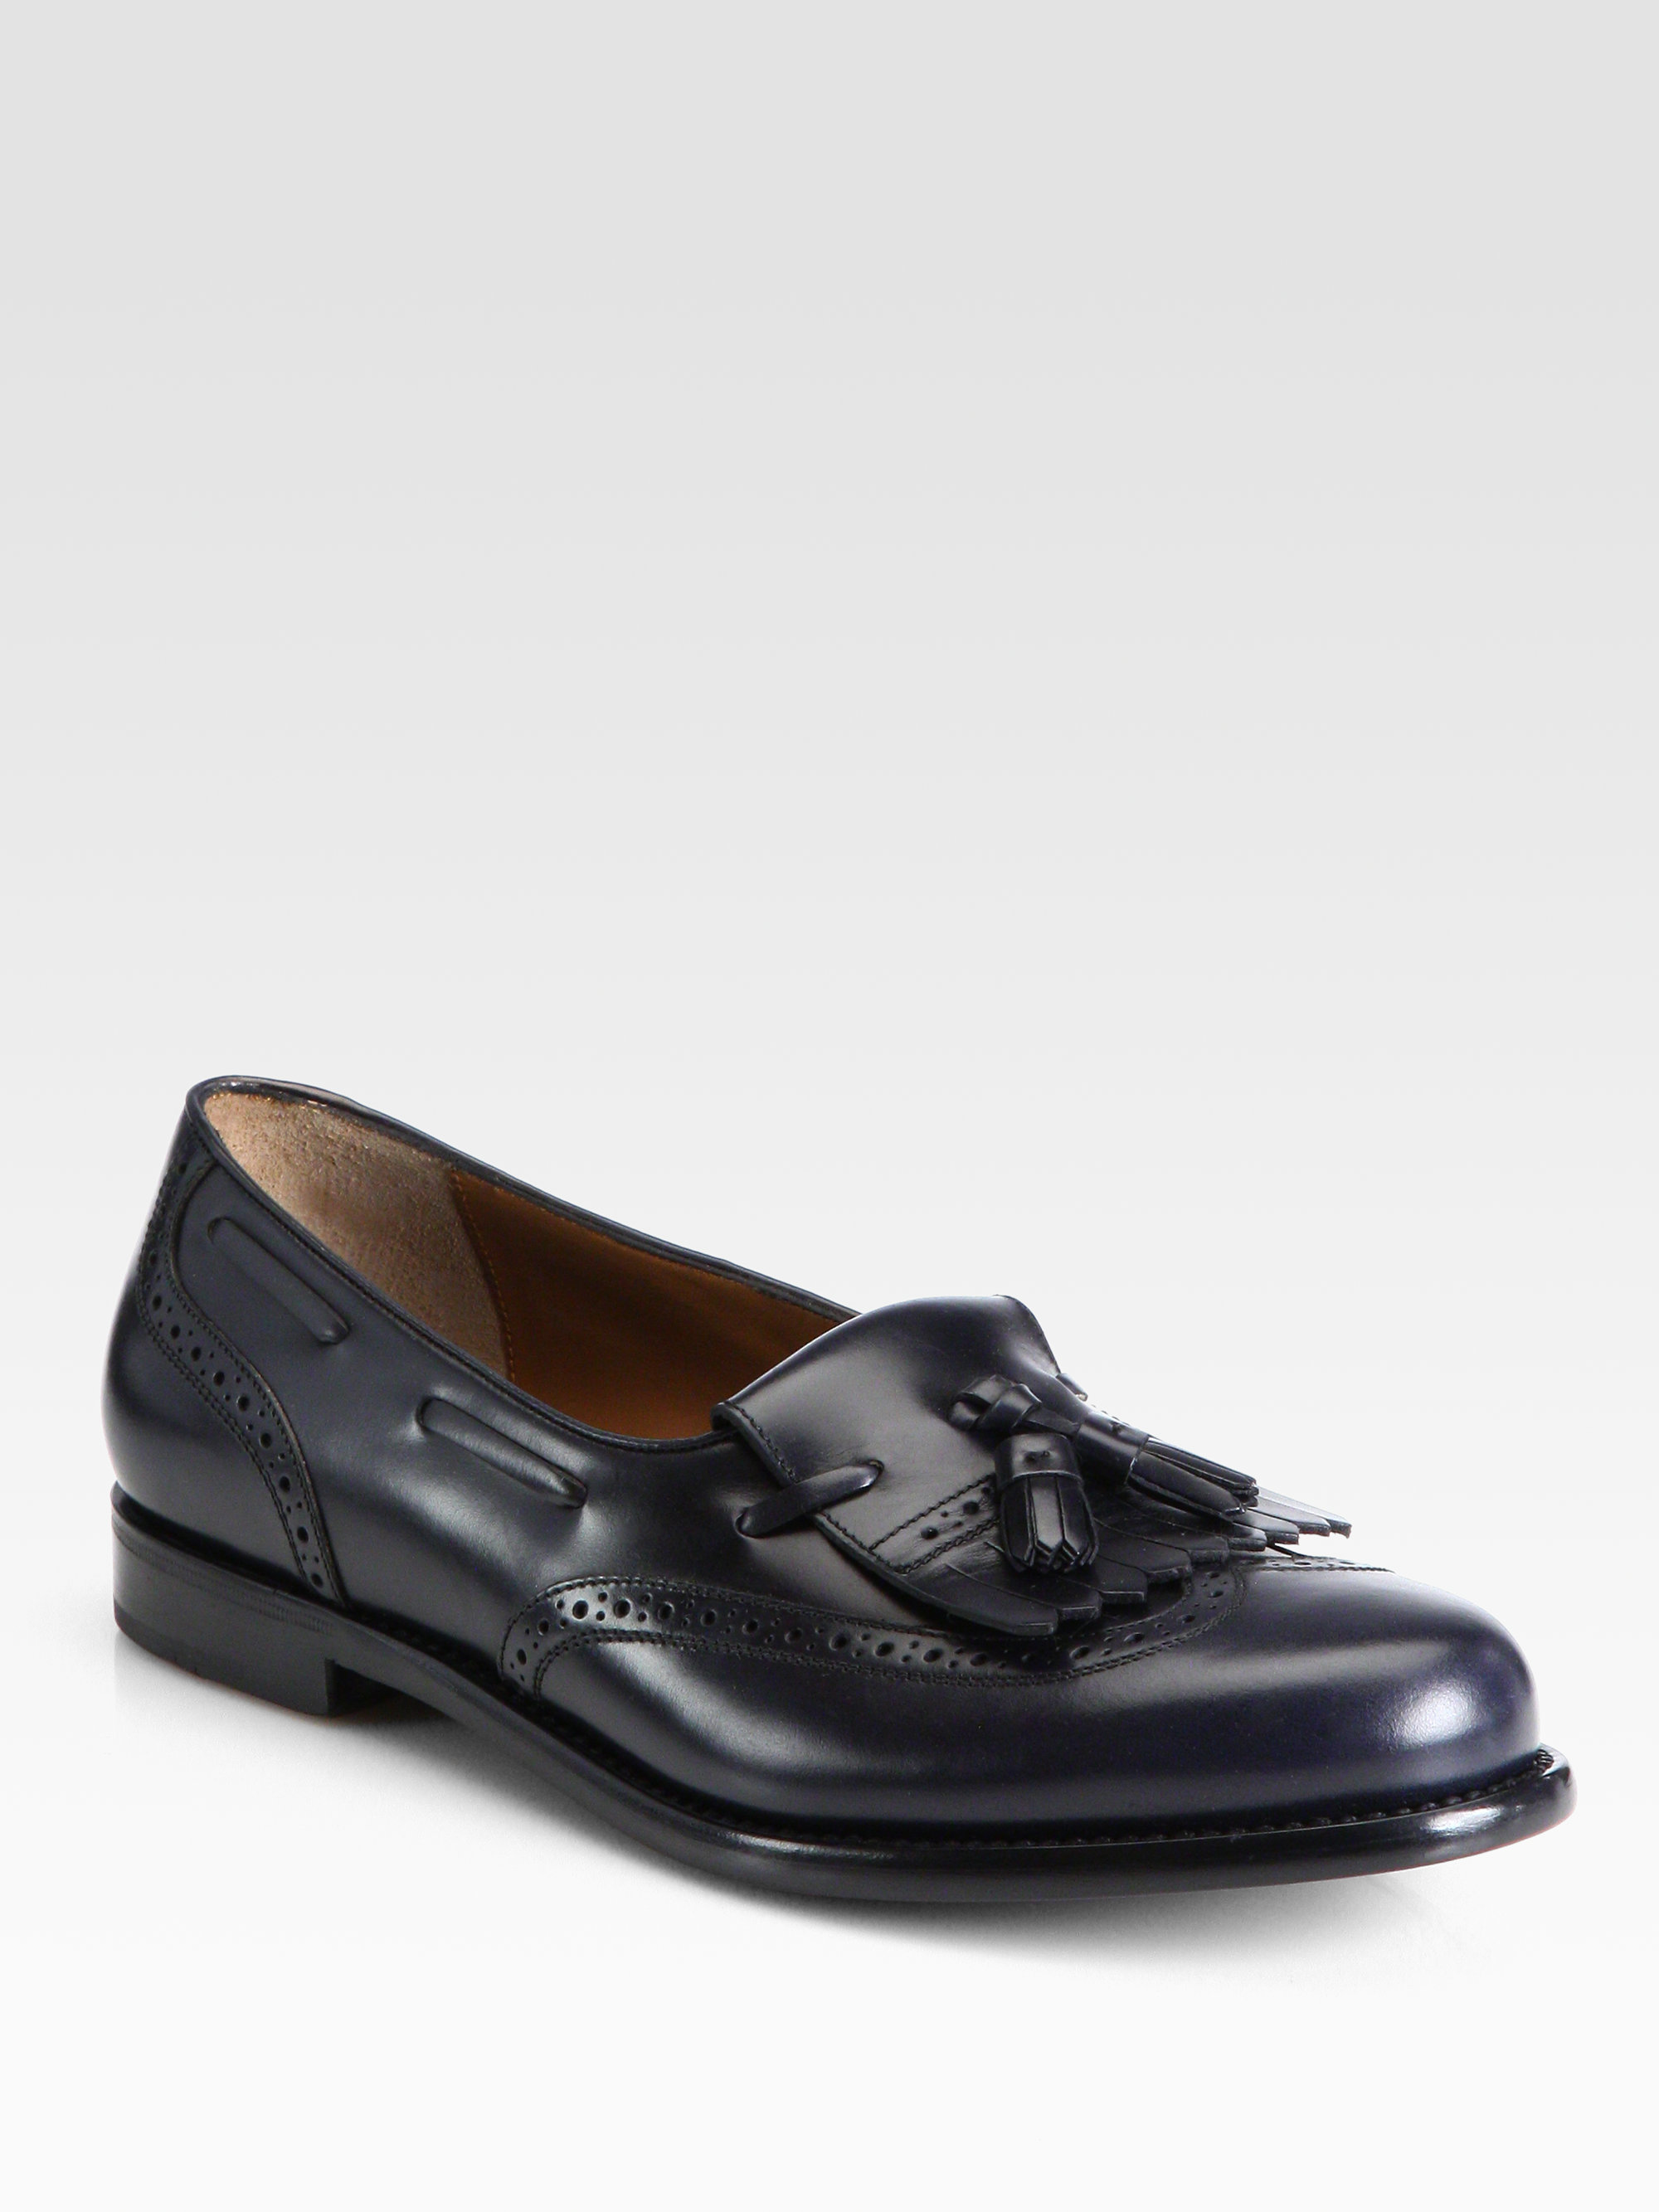 BEST ANSWER: The shoe you are looking for is style or - the original Classic Pinch Tassel Loafers in Black and Burgundy. They are available at the /5(6).